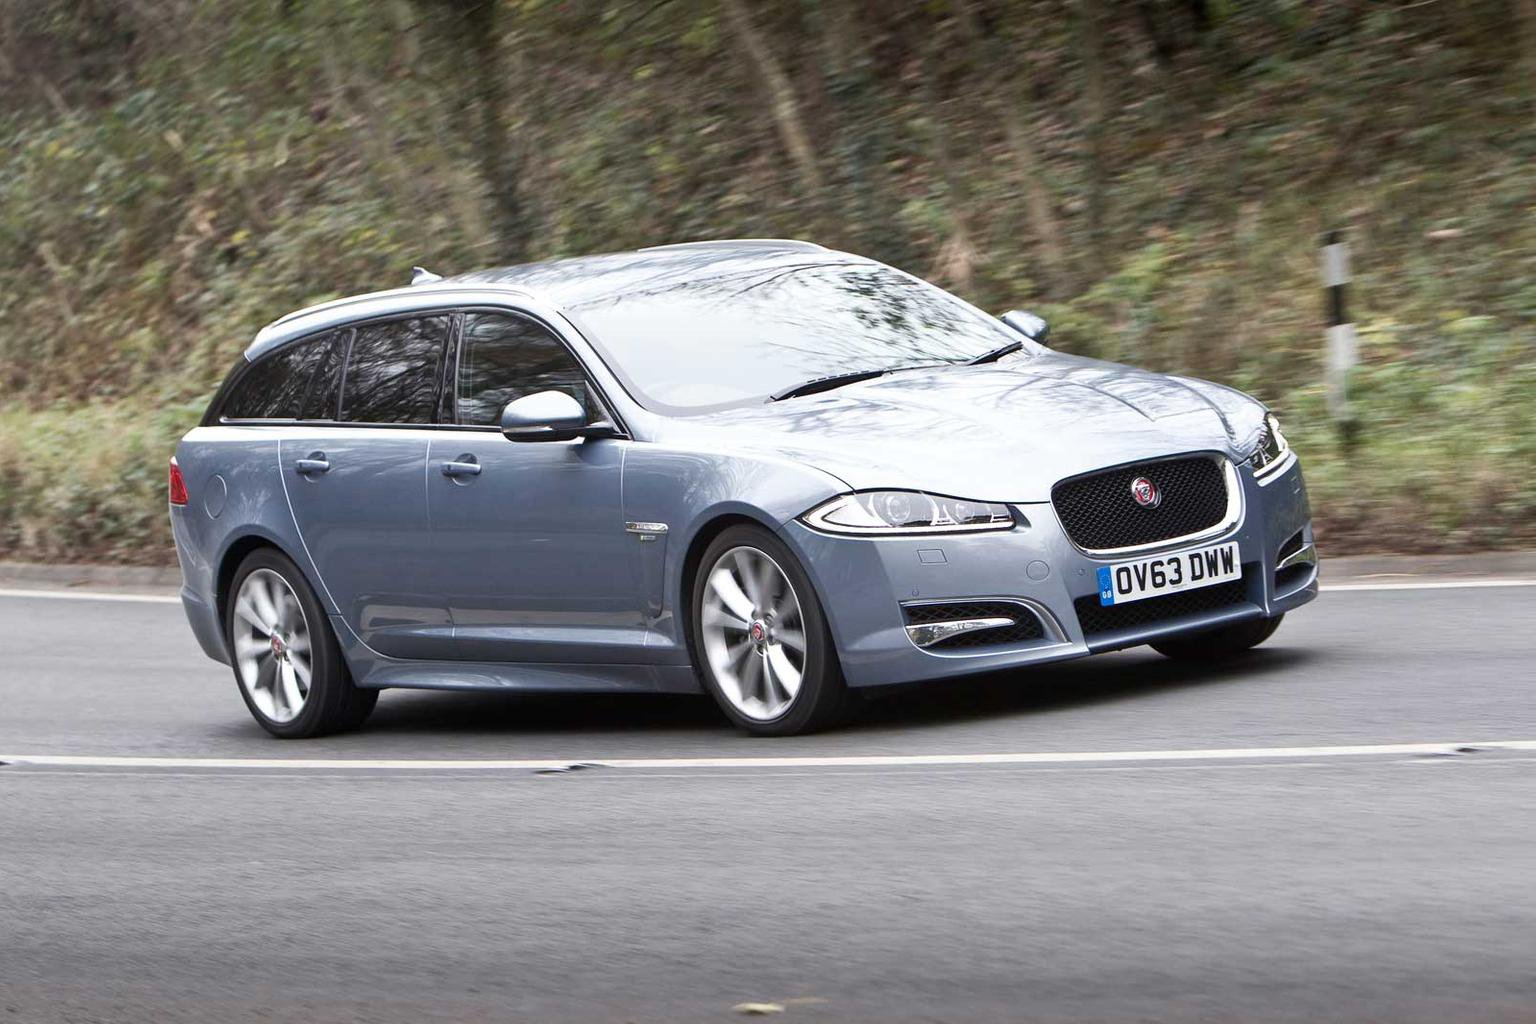 2014 Jaguar XF 2.2 review